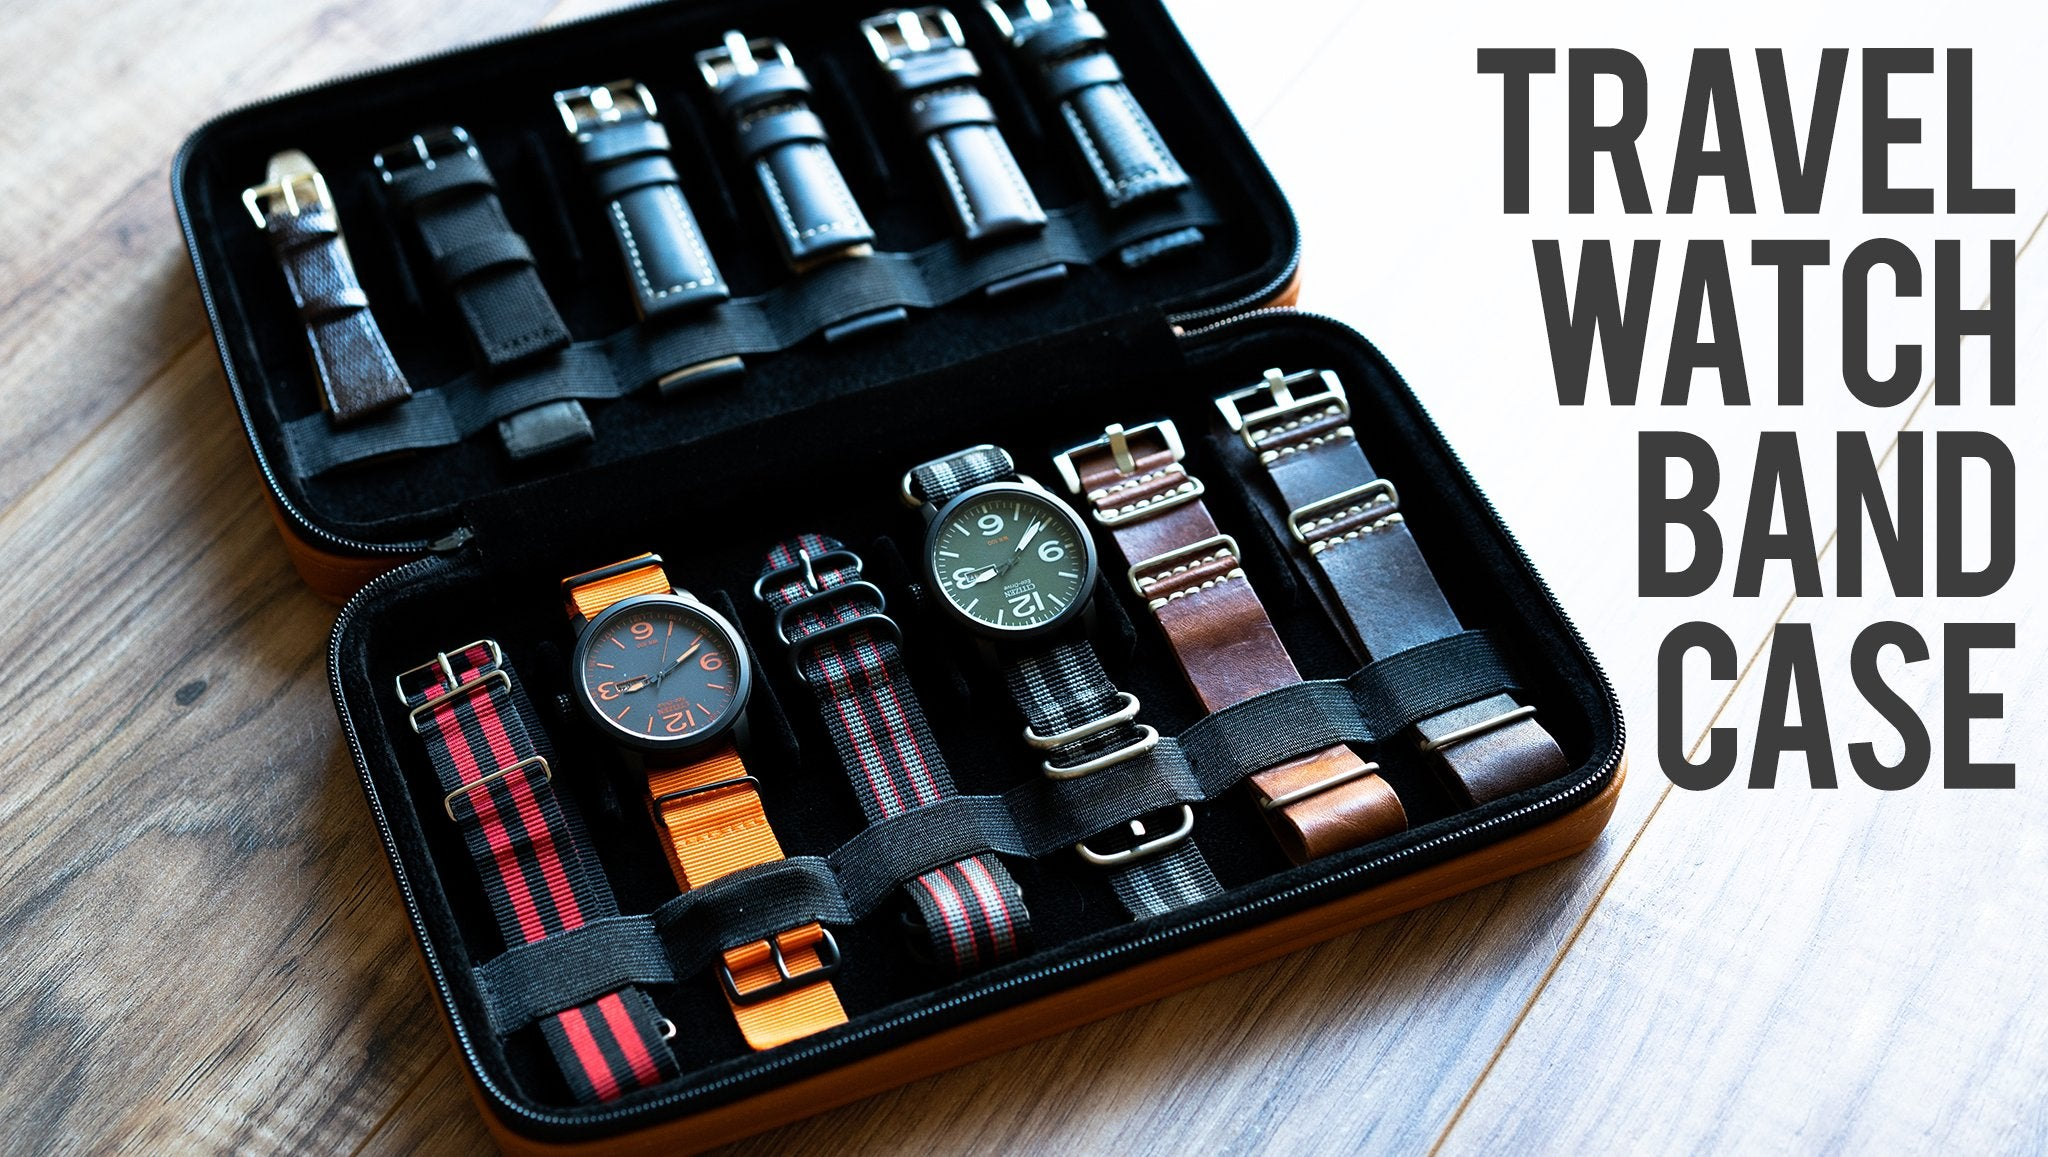 Caddy Bay Collection Watch Band Case Travel Orange